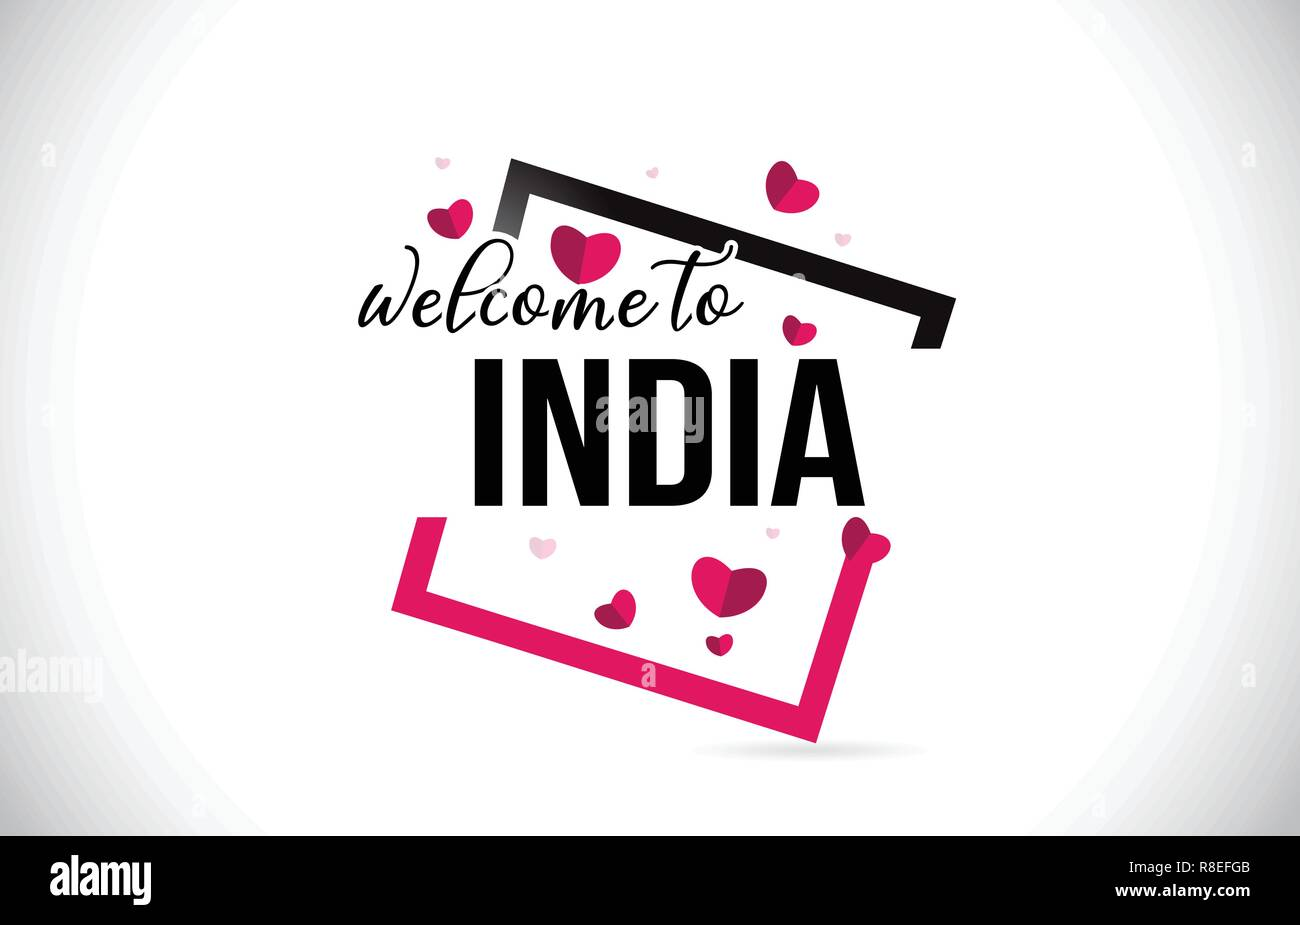 Welcome Sign And India Stock Photos & Welcome Sign And India